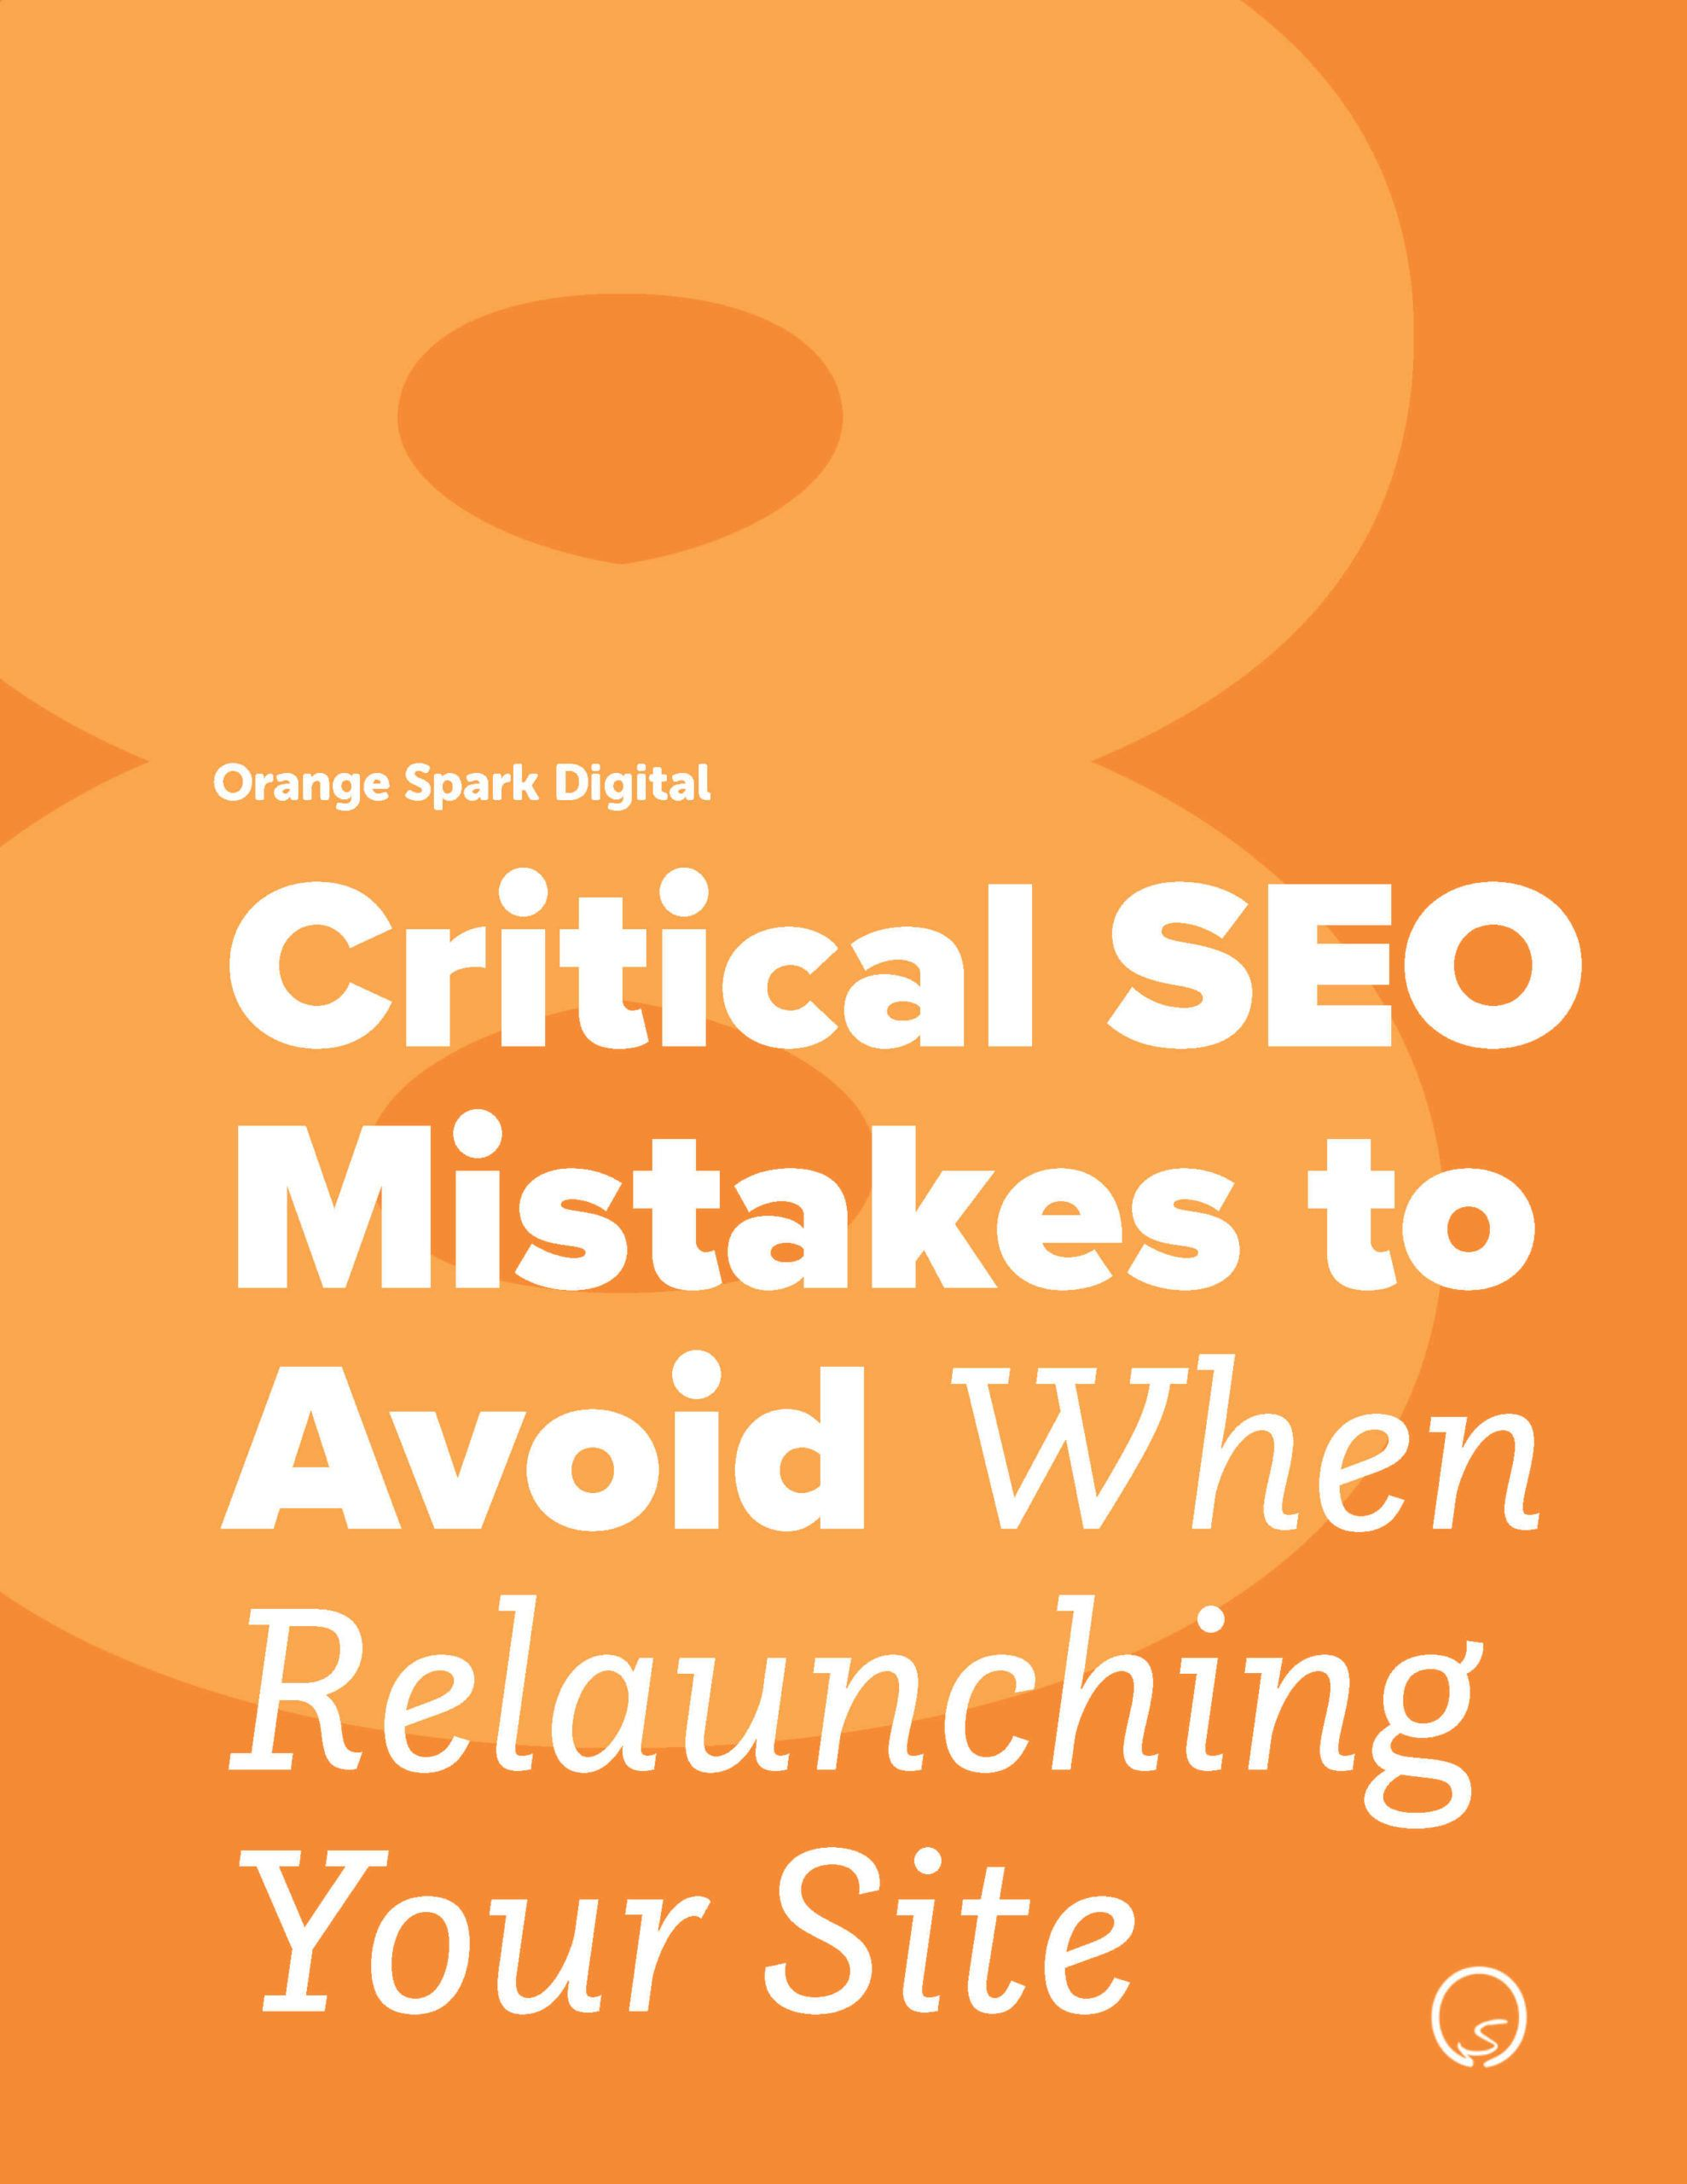 Guide: Critical SEO Mistakes to Avoid When Relaunching Your Site